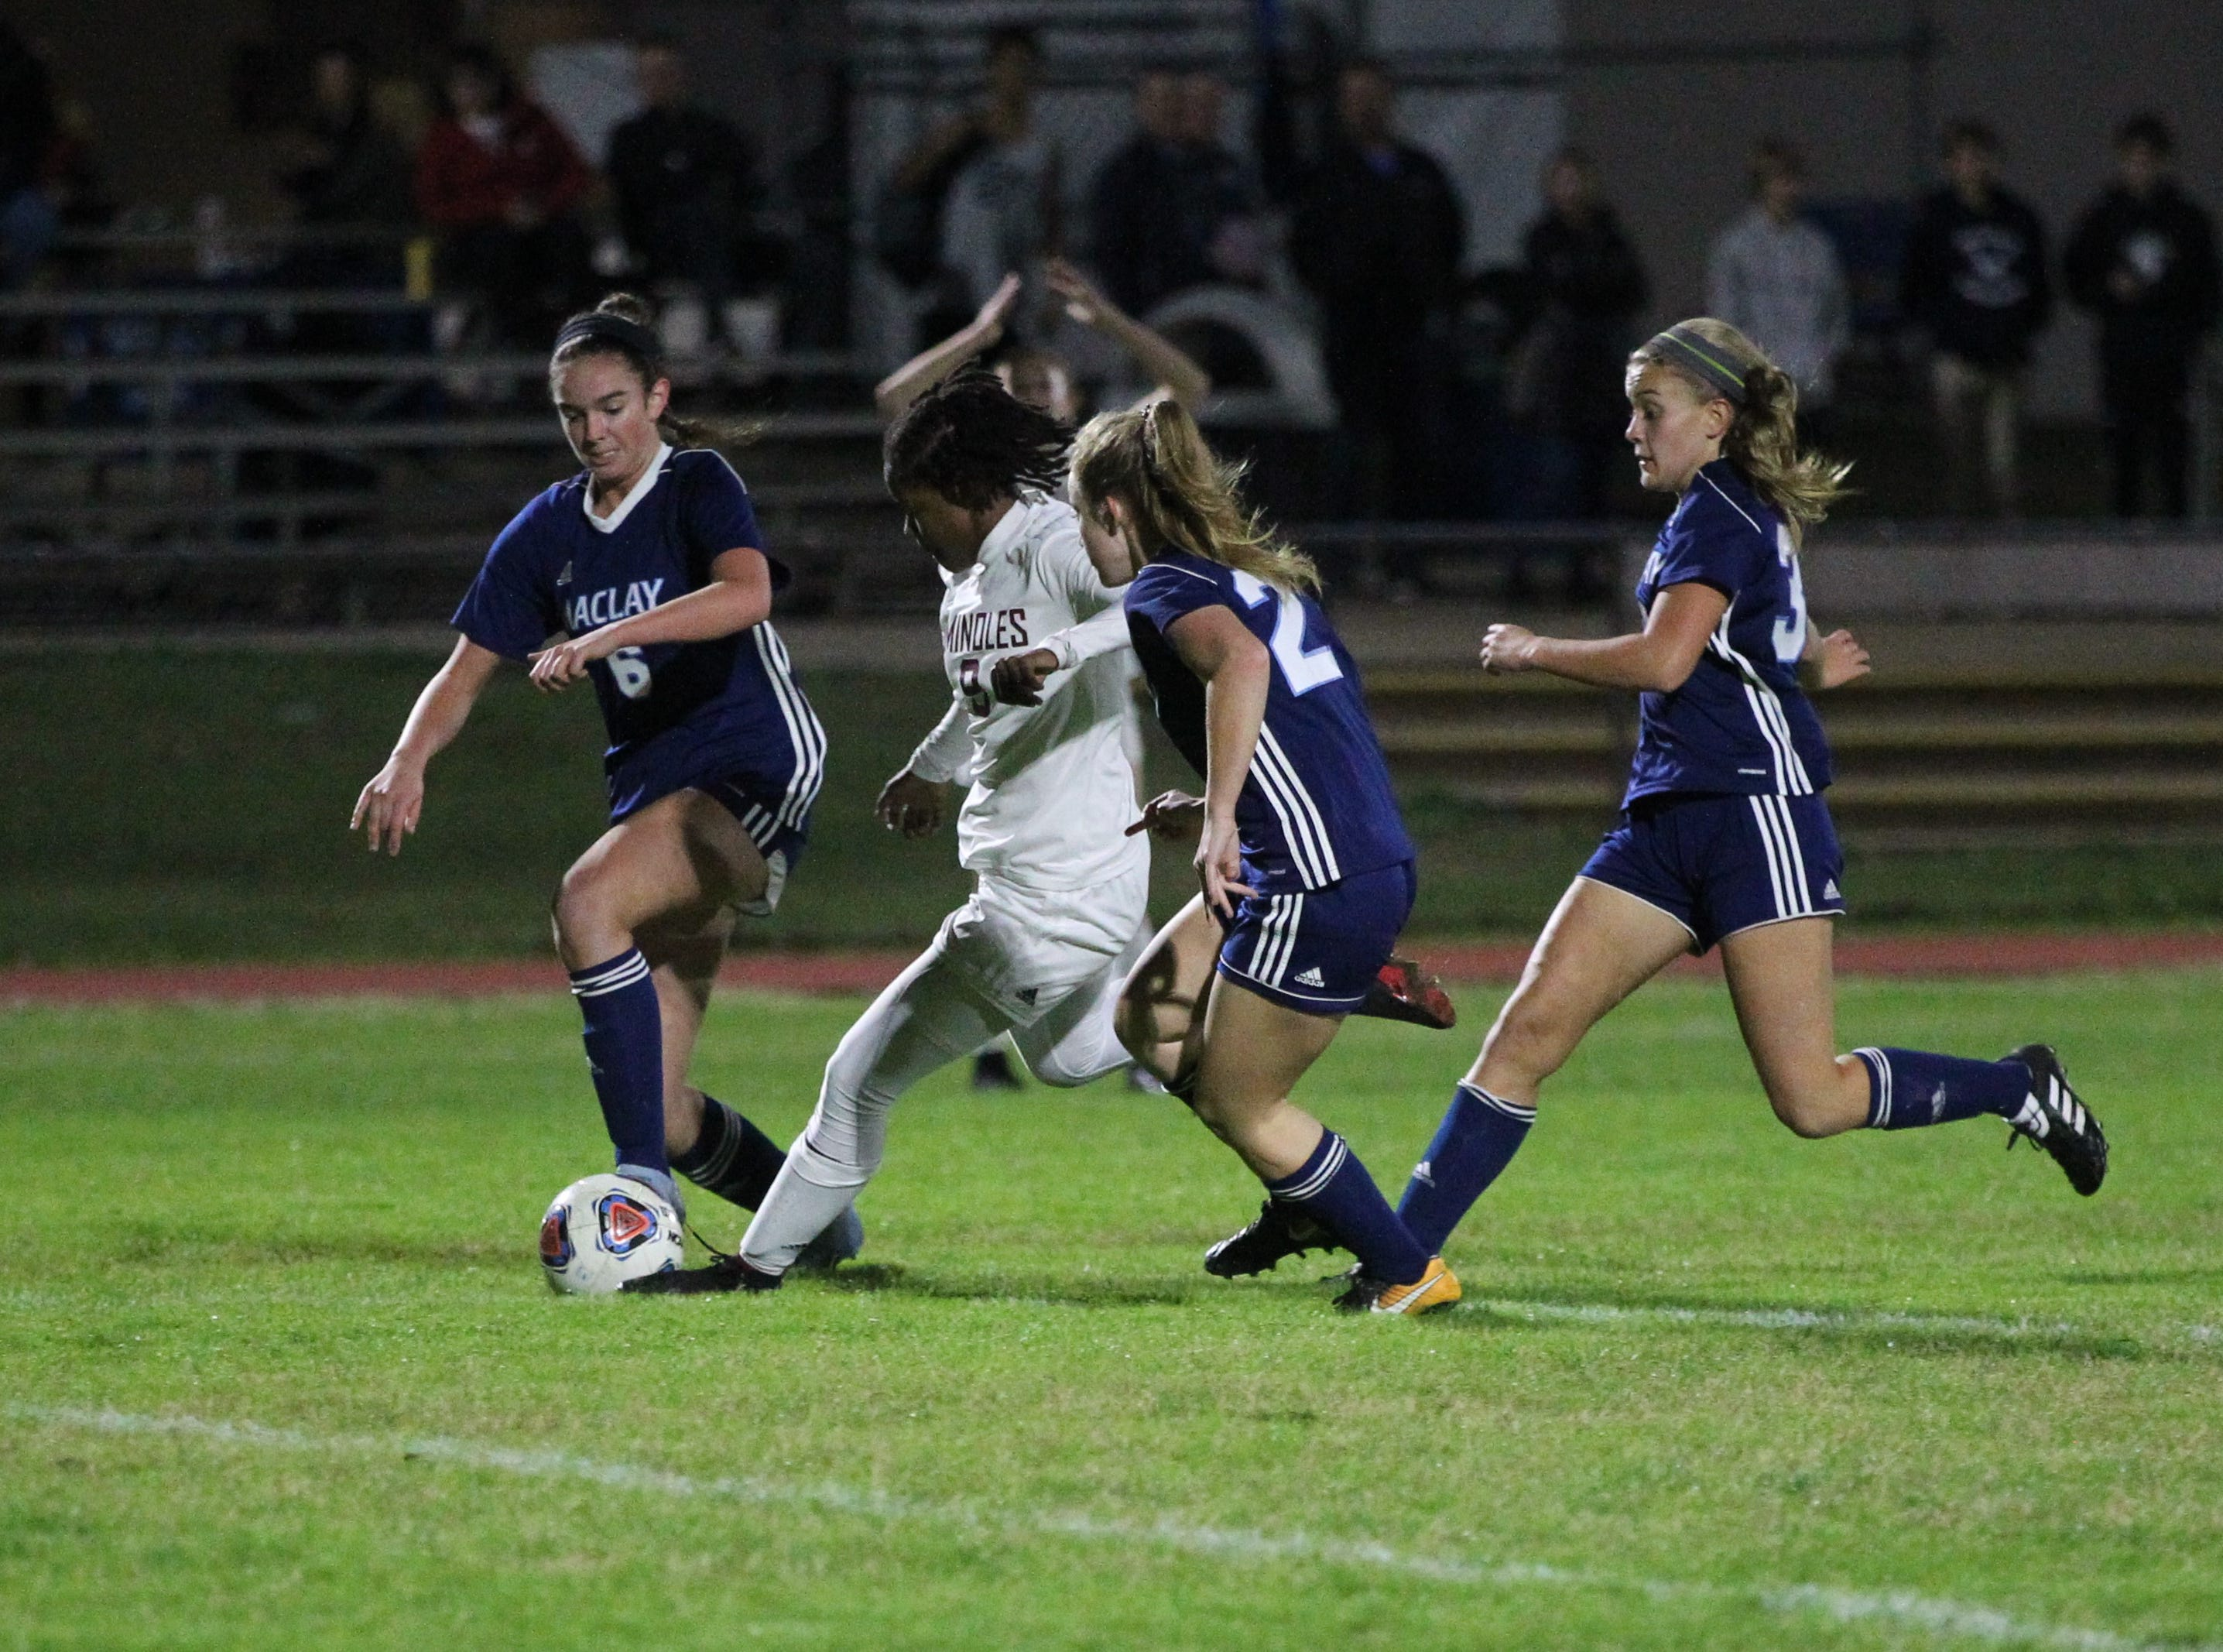 Florida High's Janae Scott takes a shot in between three defenders, but Maclay won 3-0 at home against Florida High on Jan. 8, 2019.